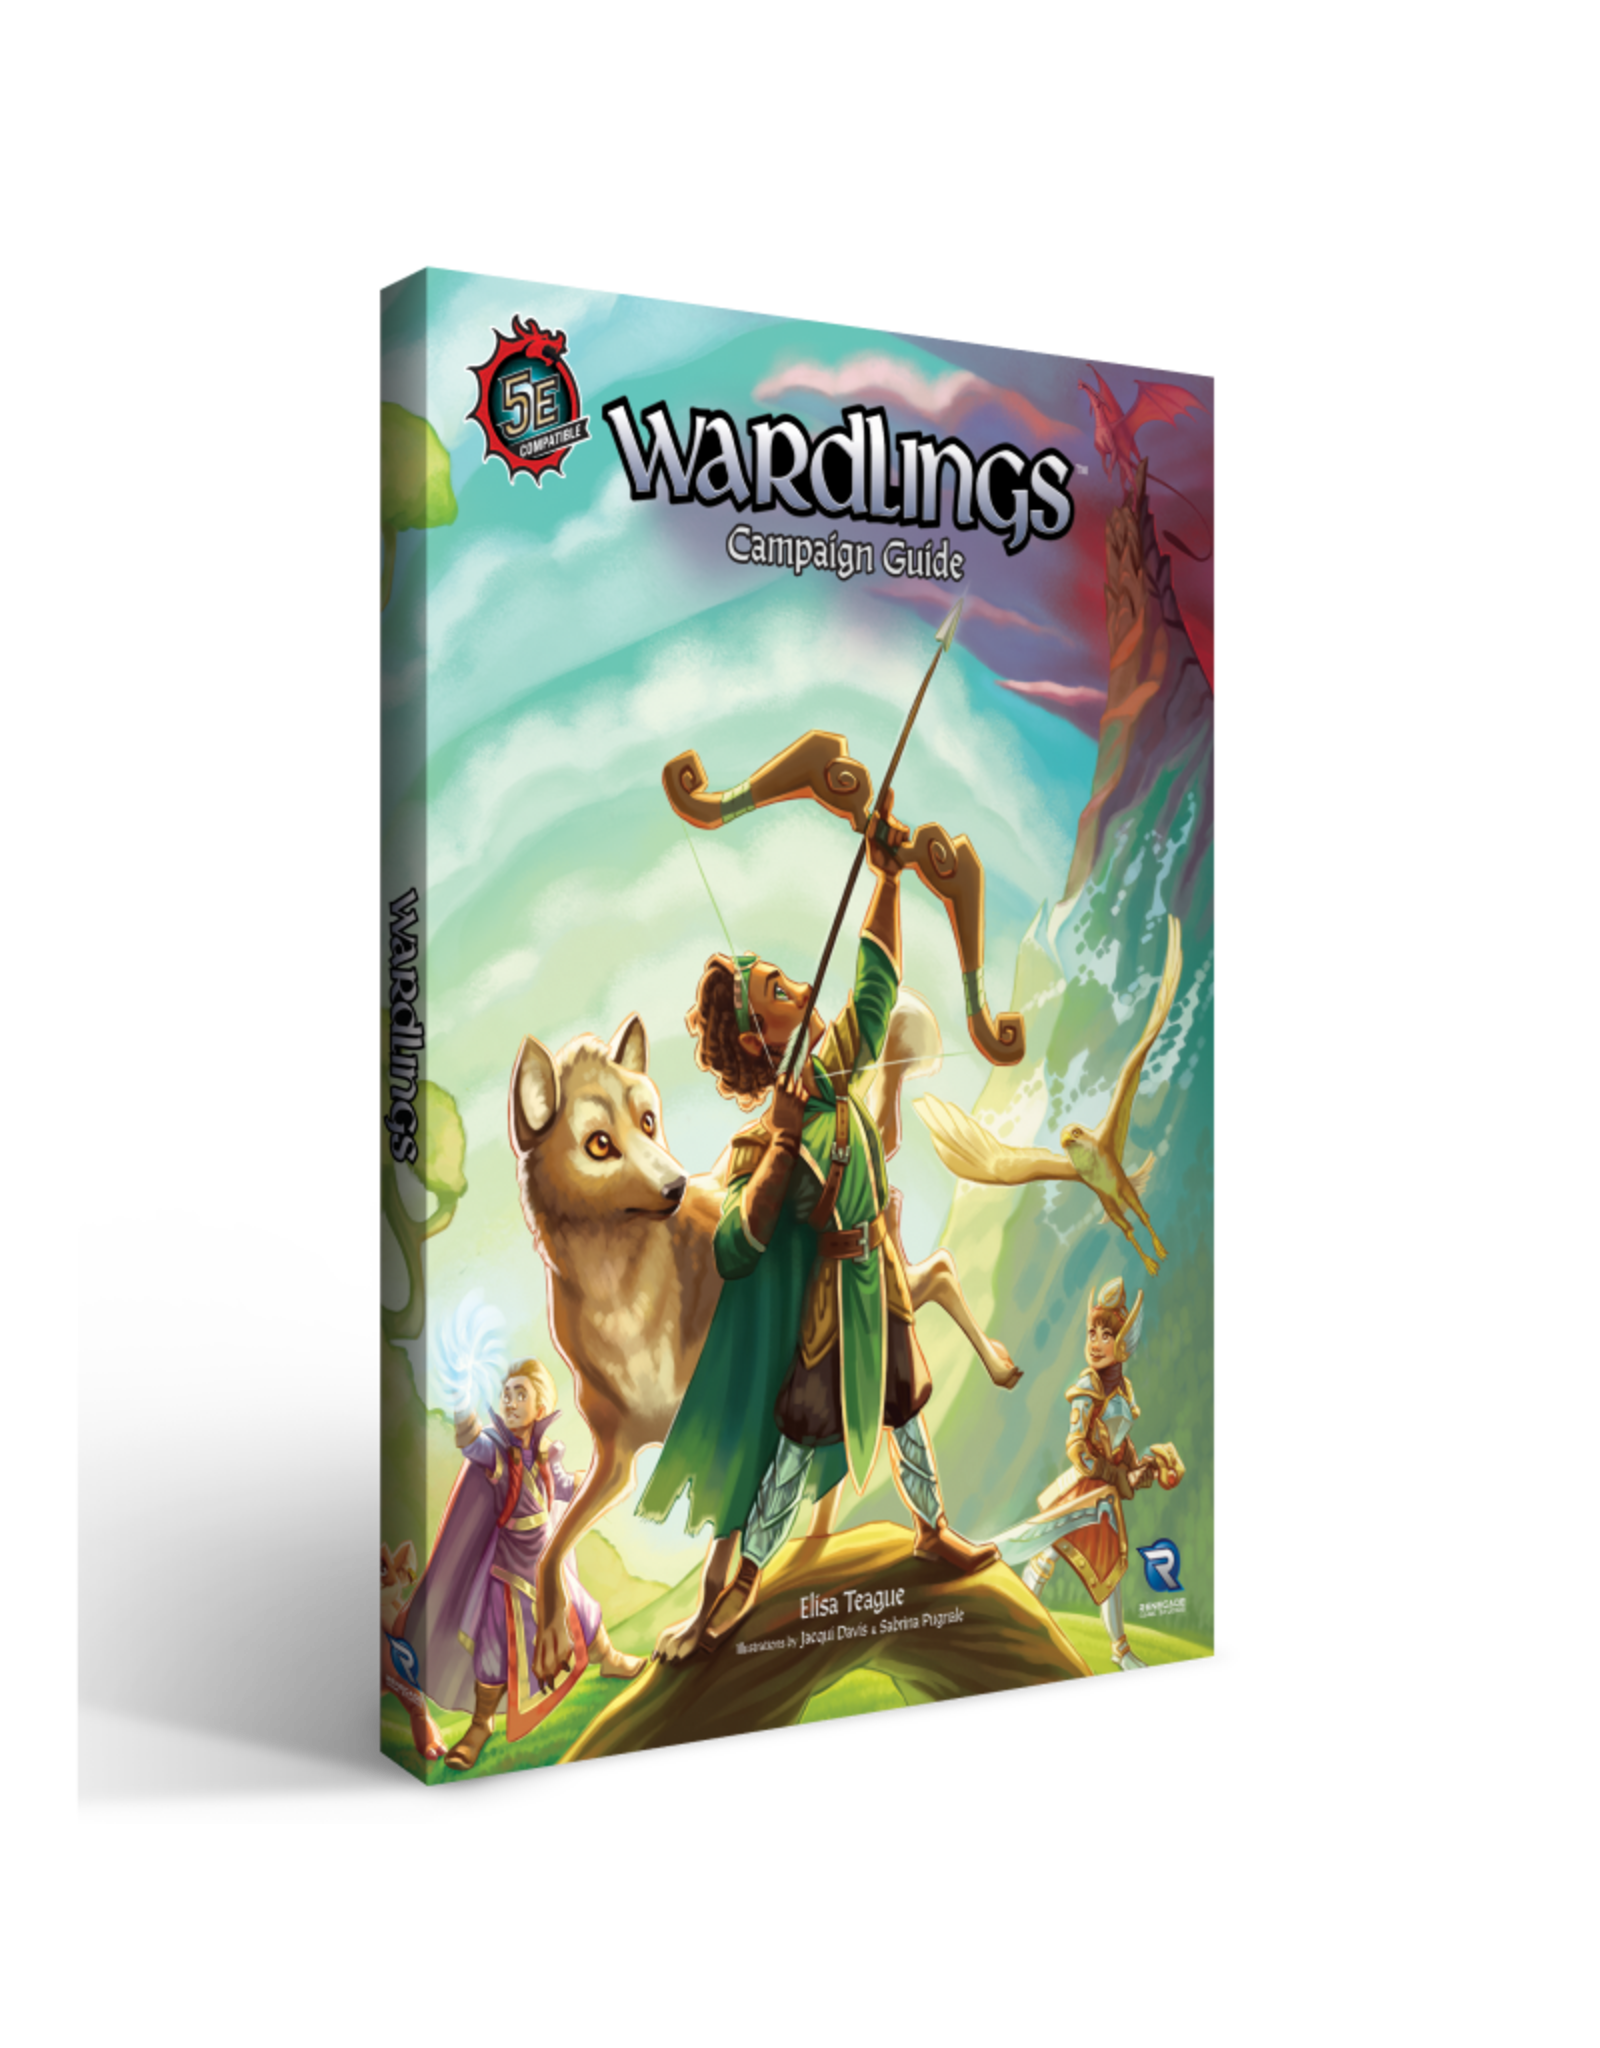 Wardlings: Campaign Guide